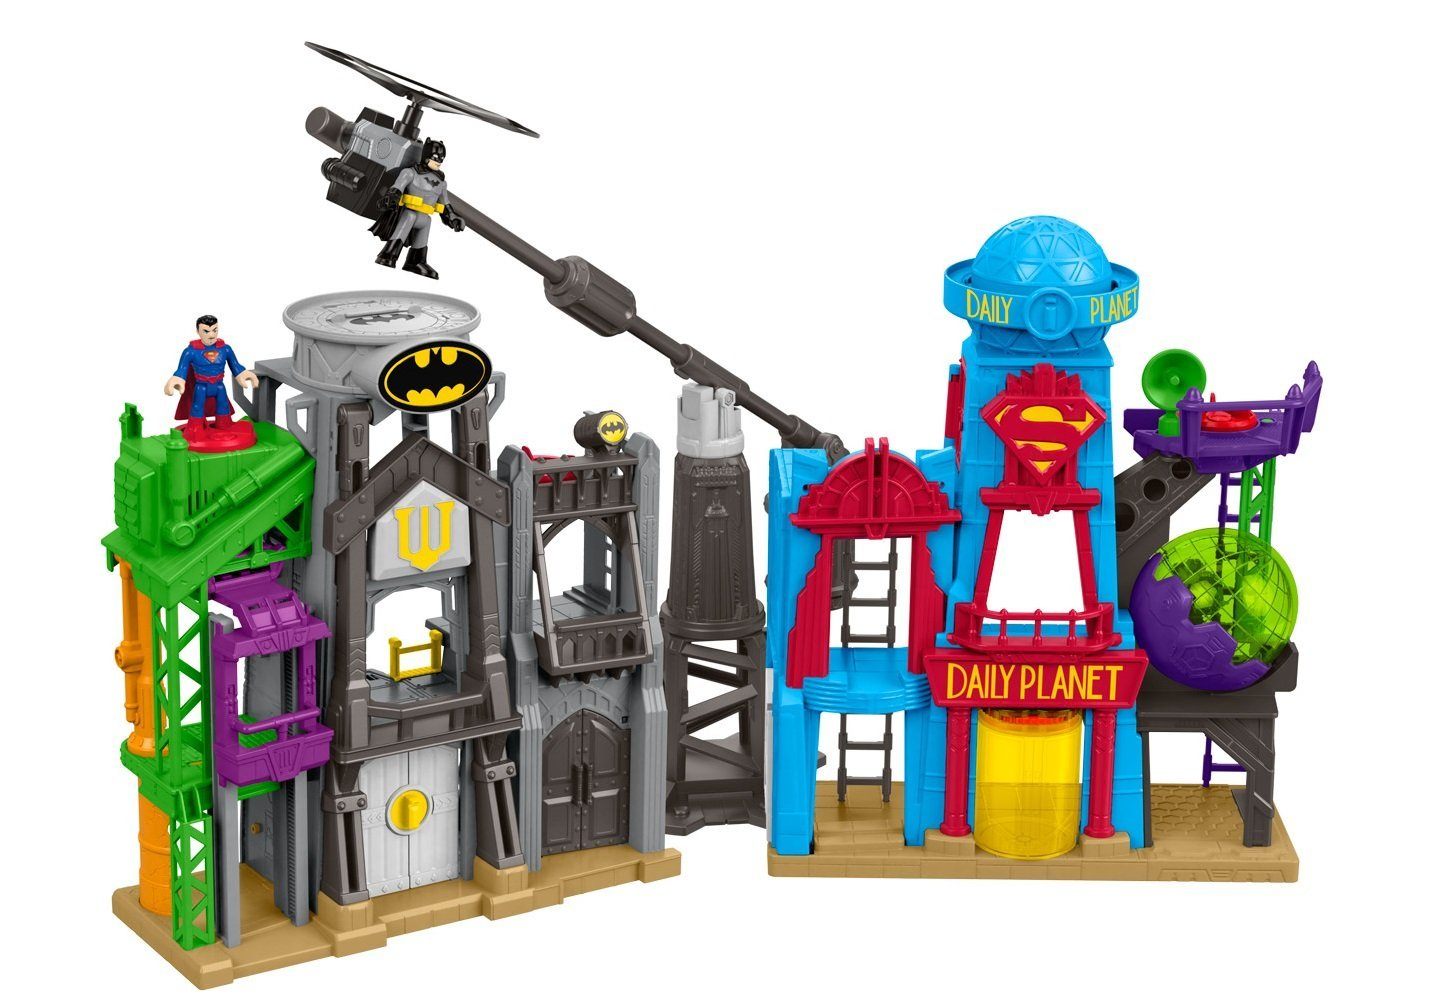 batman superman toy playset for kids with special needs